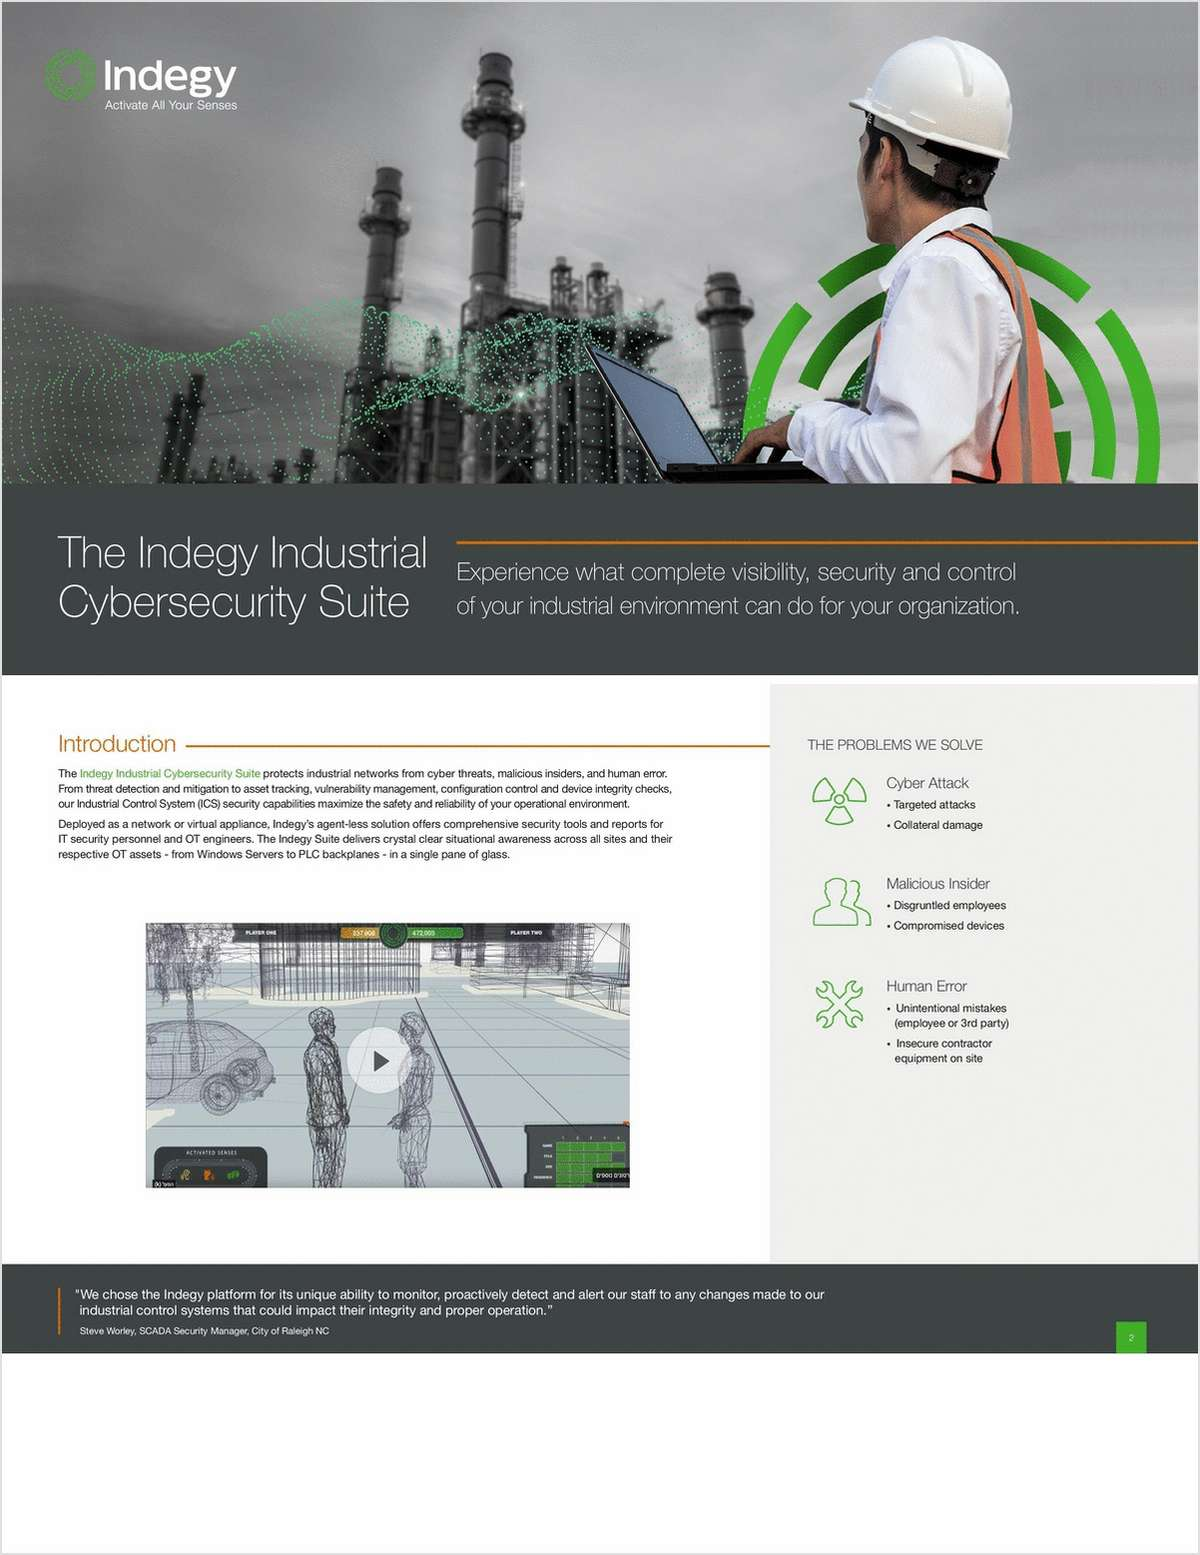 The Indegy Industrial Cybersecurity Suite